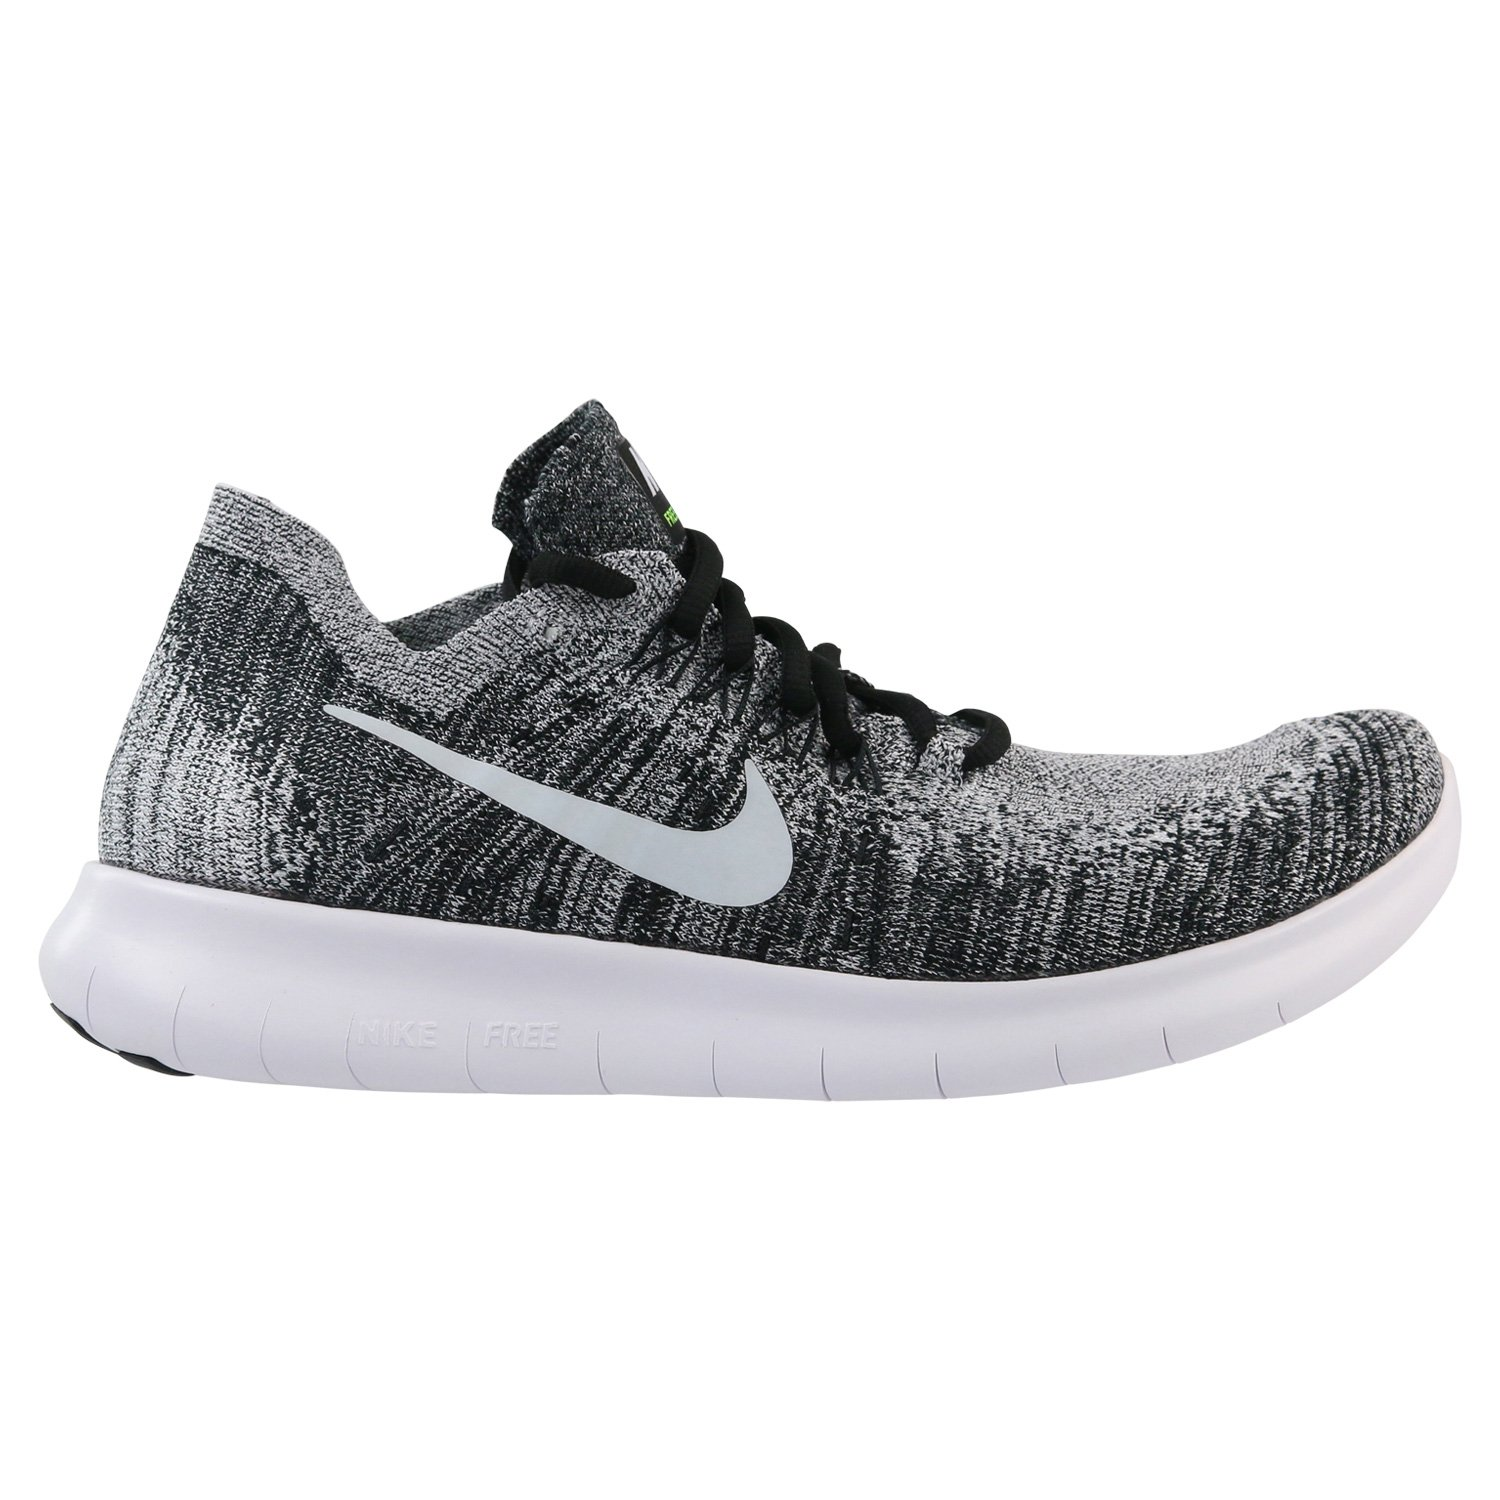 brand new d0087 a3990 Galleon - Nike Men s Free RN Flyknit 2017 Running Shoe (14 D(M) US, Black  White-Volt)